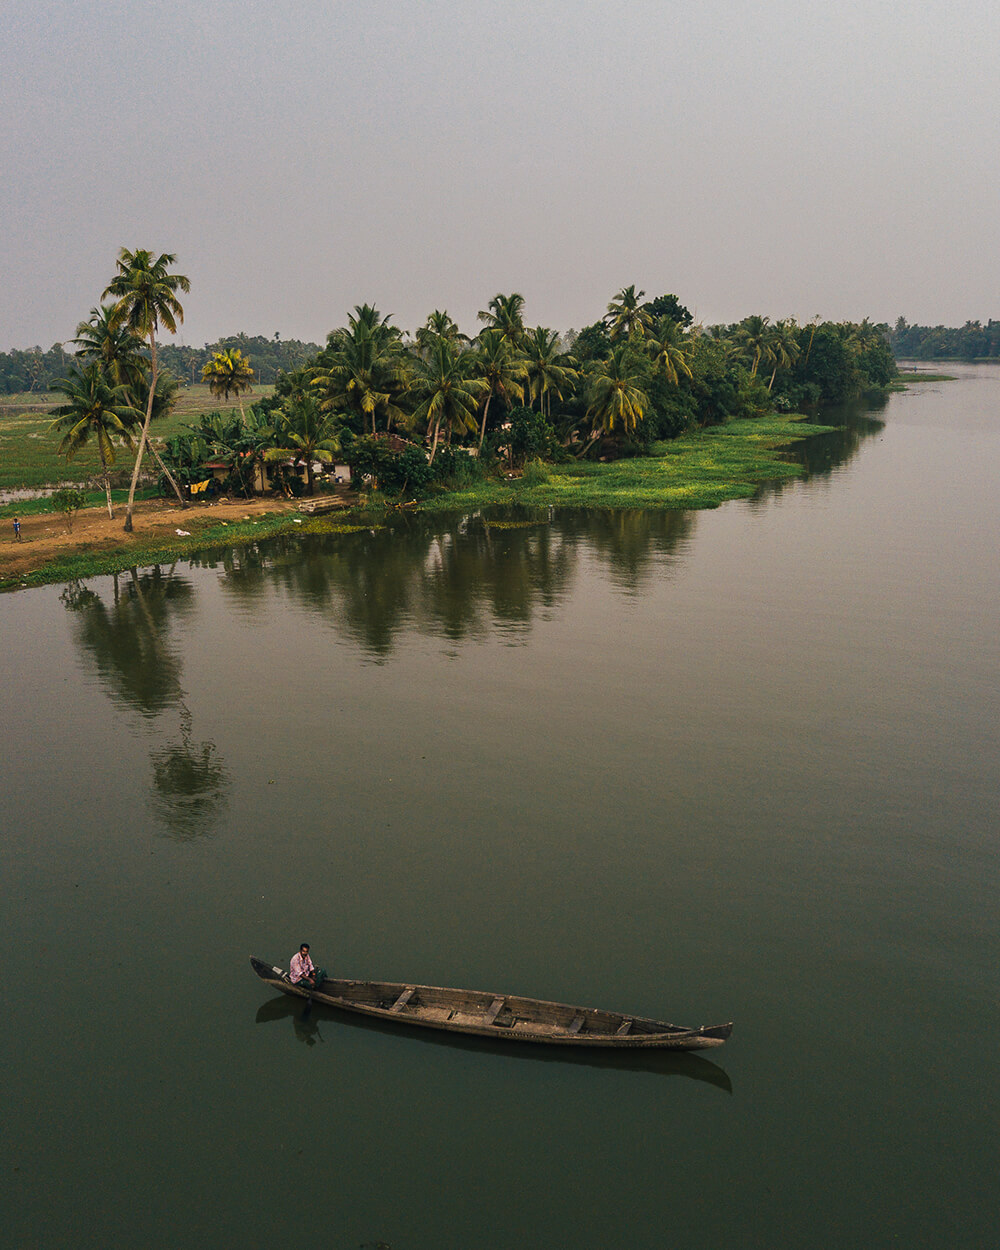 Image of Kerala Backwaters, India. Shot by Melissa Findley